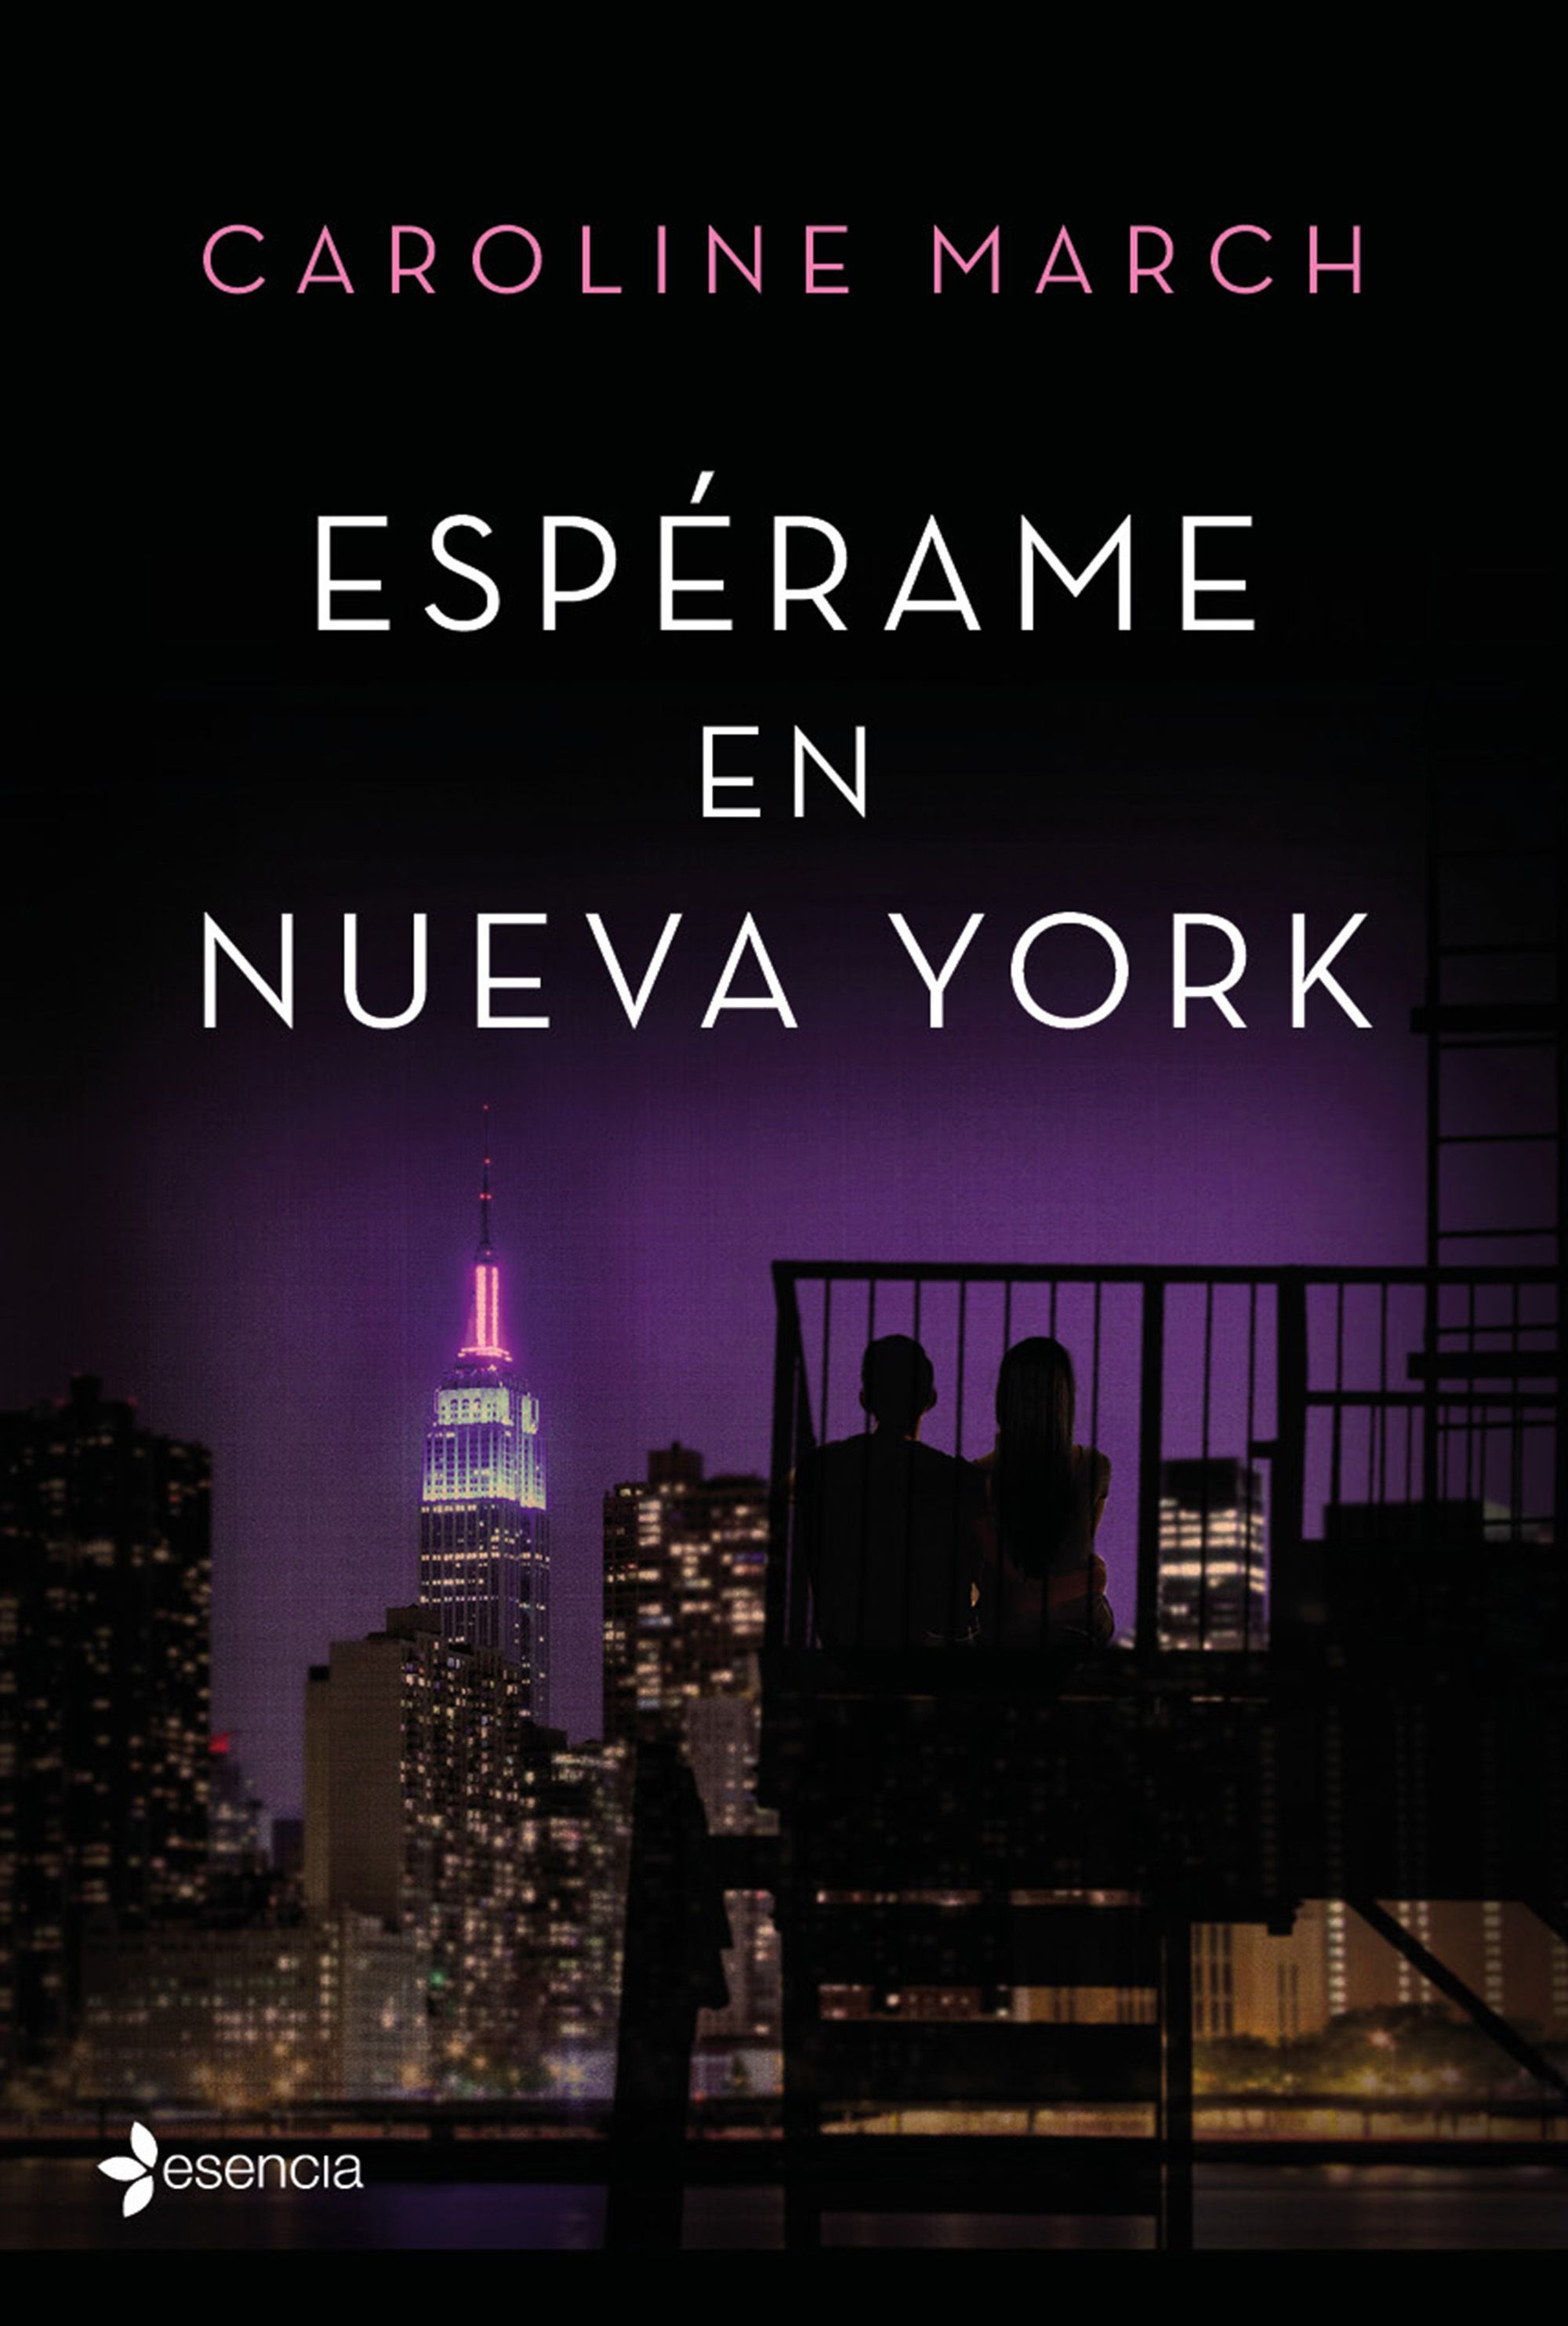 Espérame en NY, Caroline March: